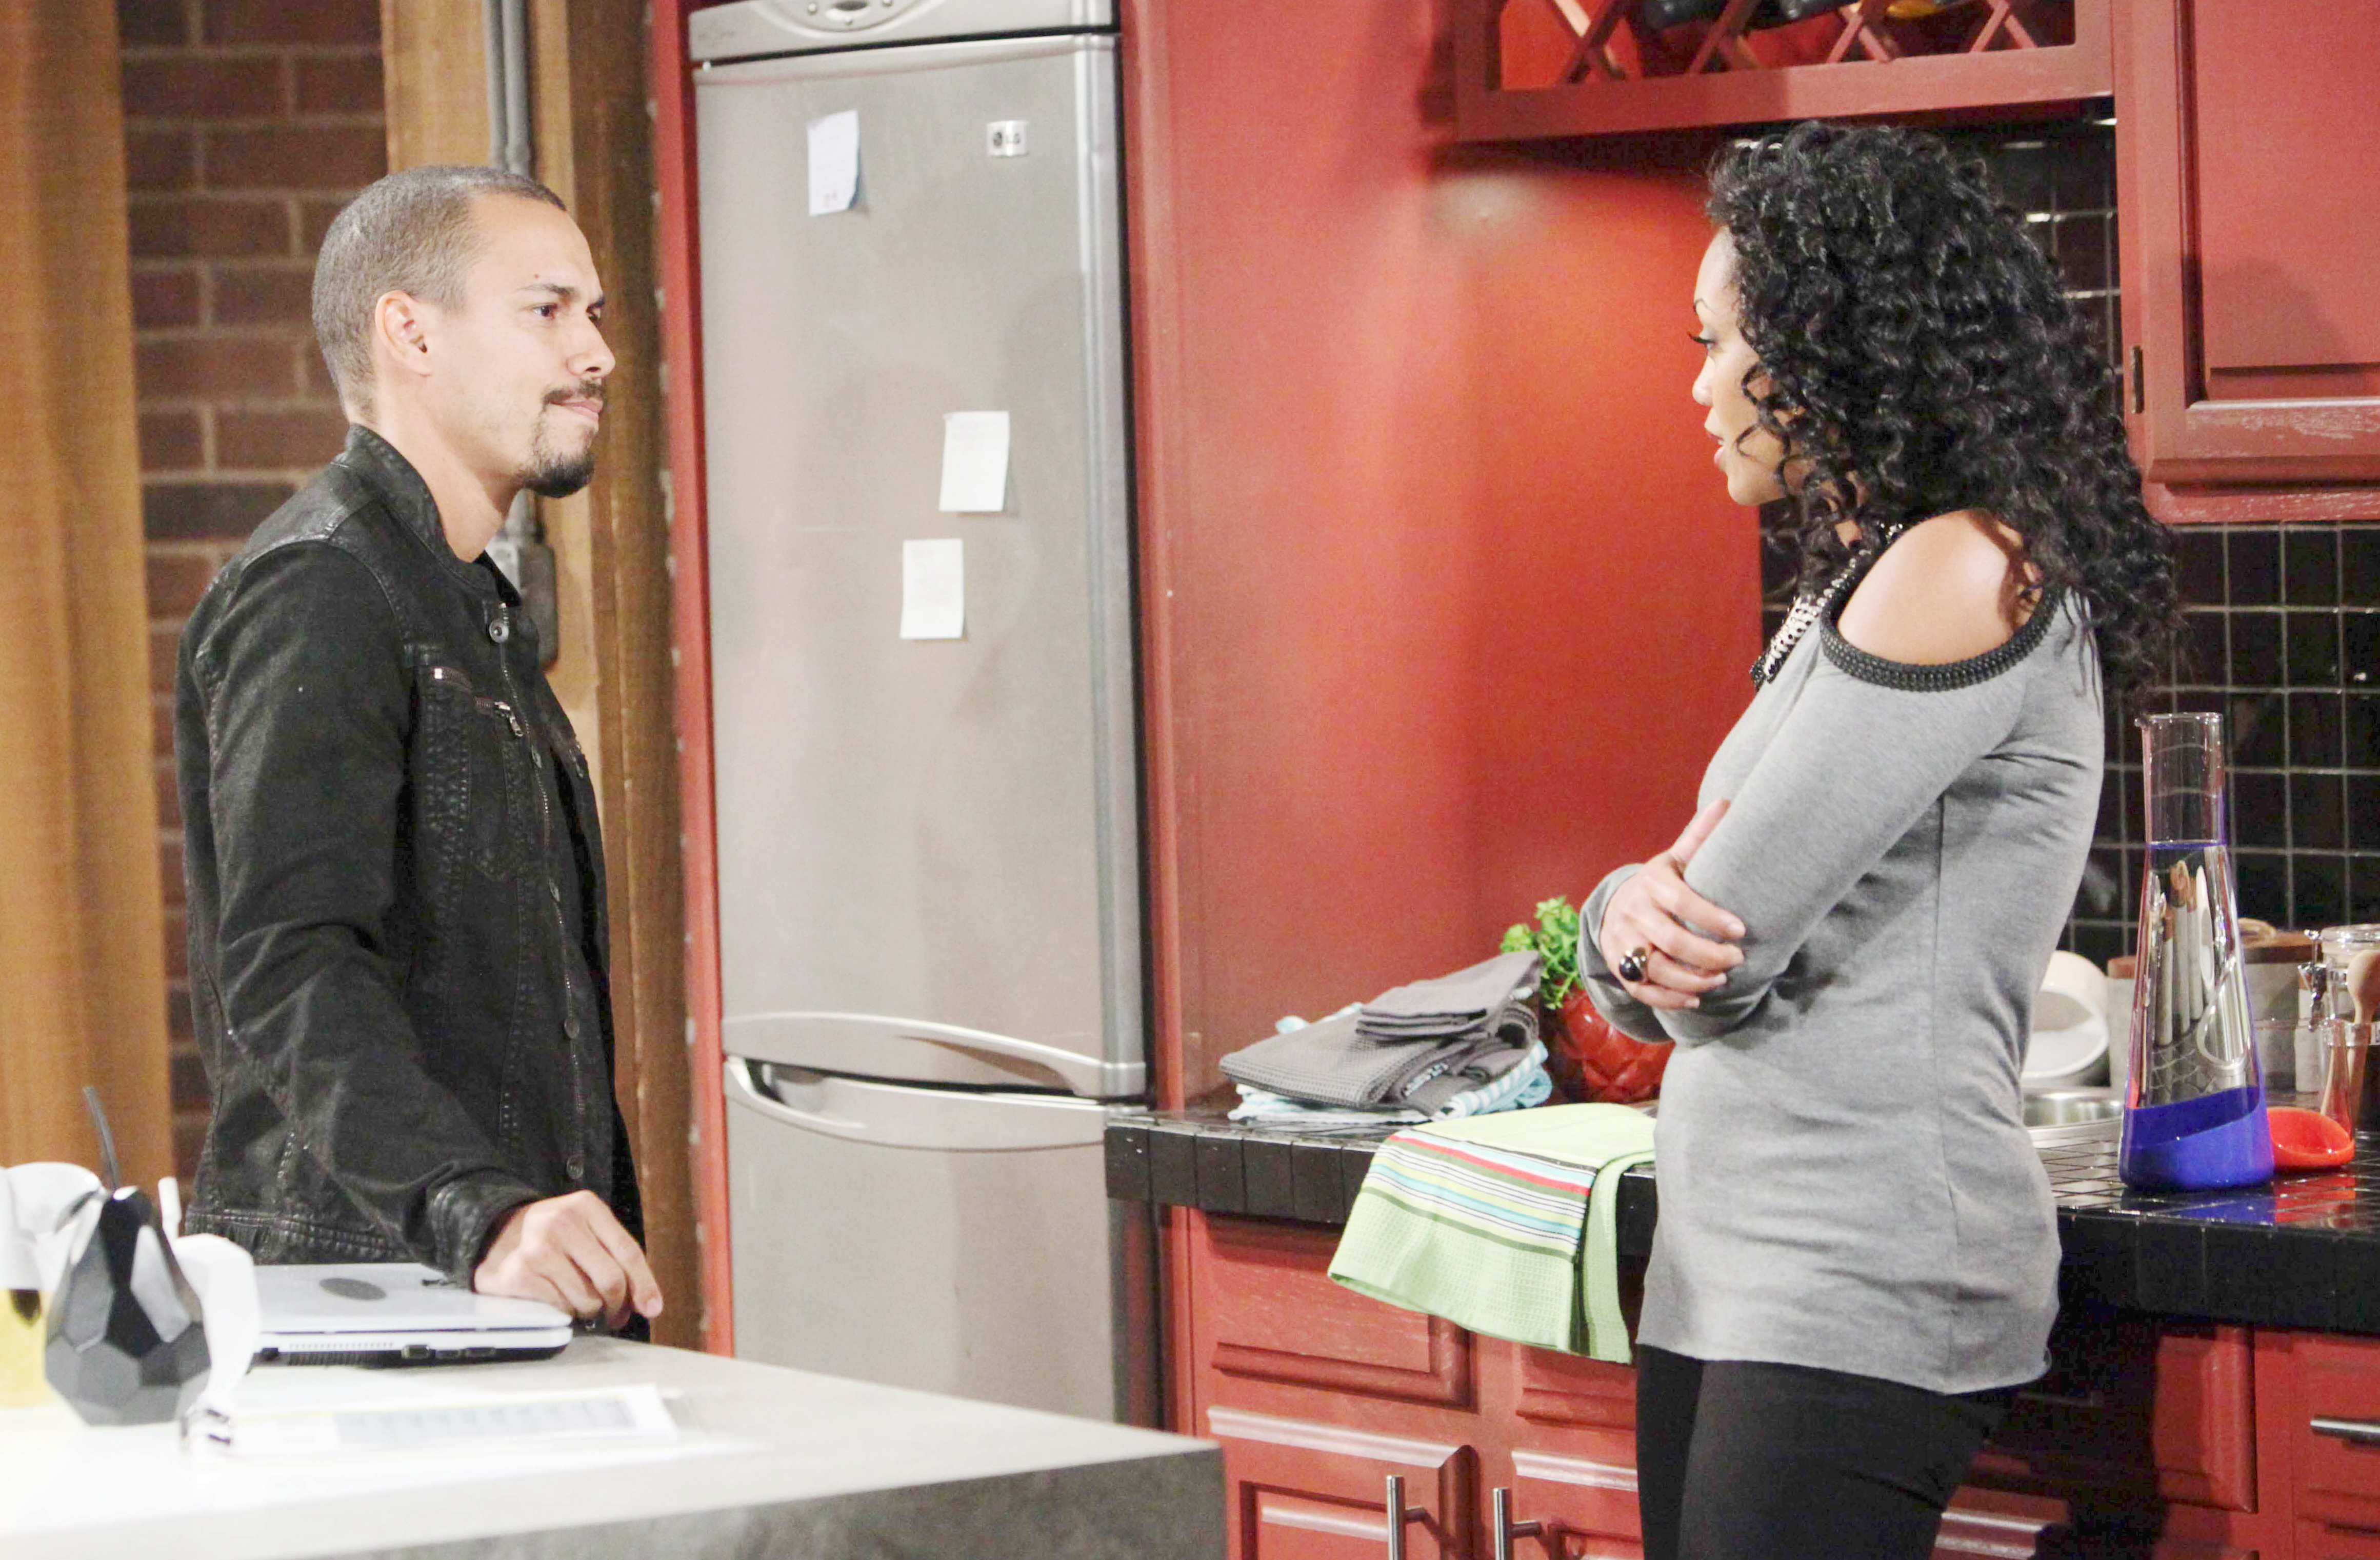 The Young and the Restless Spoilers: Hilary lets her guard down with Devon.